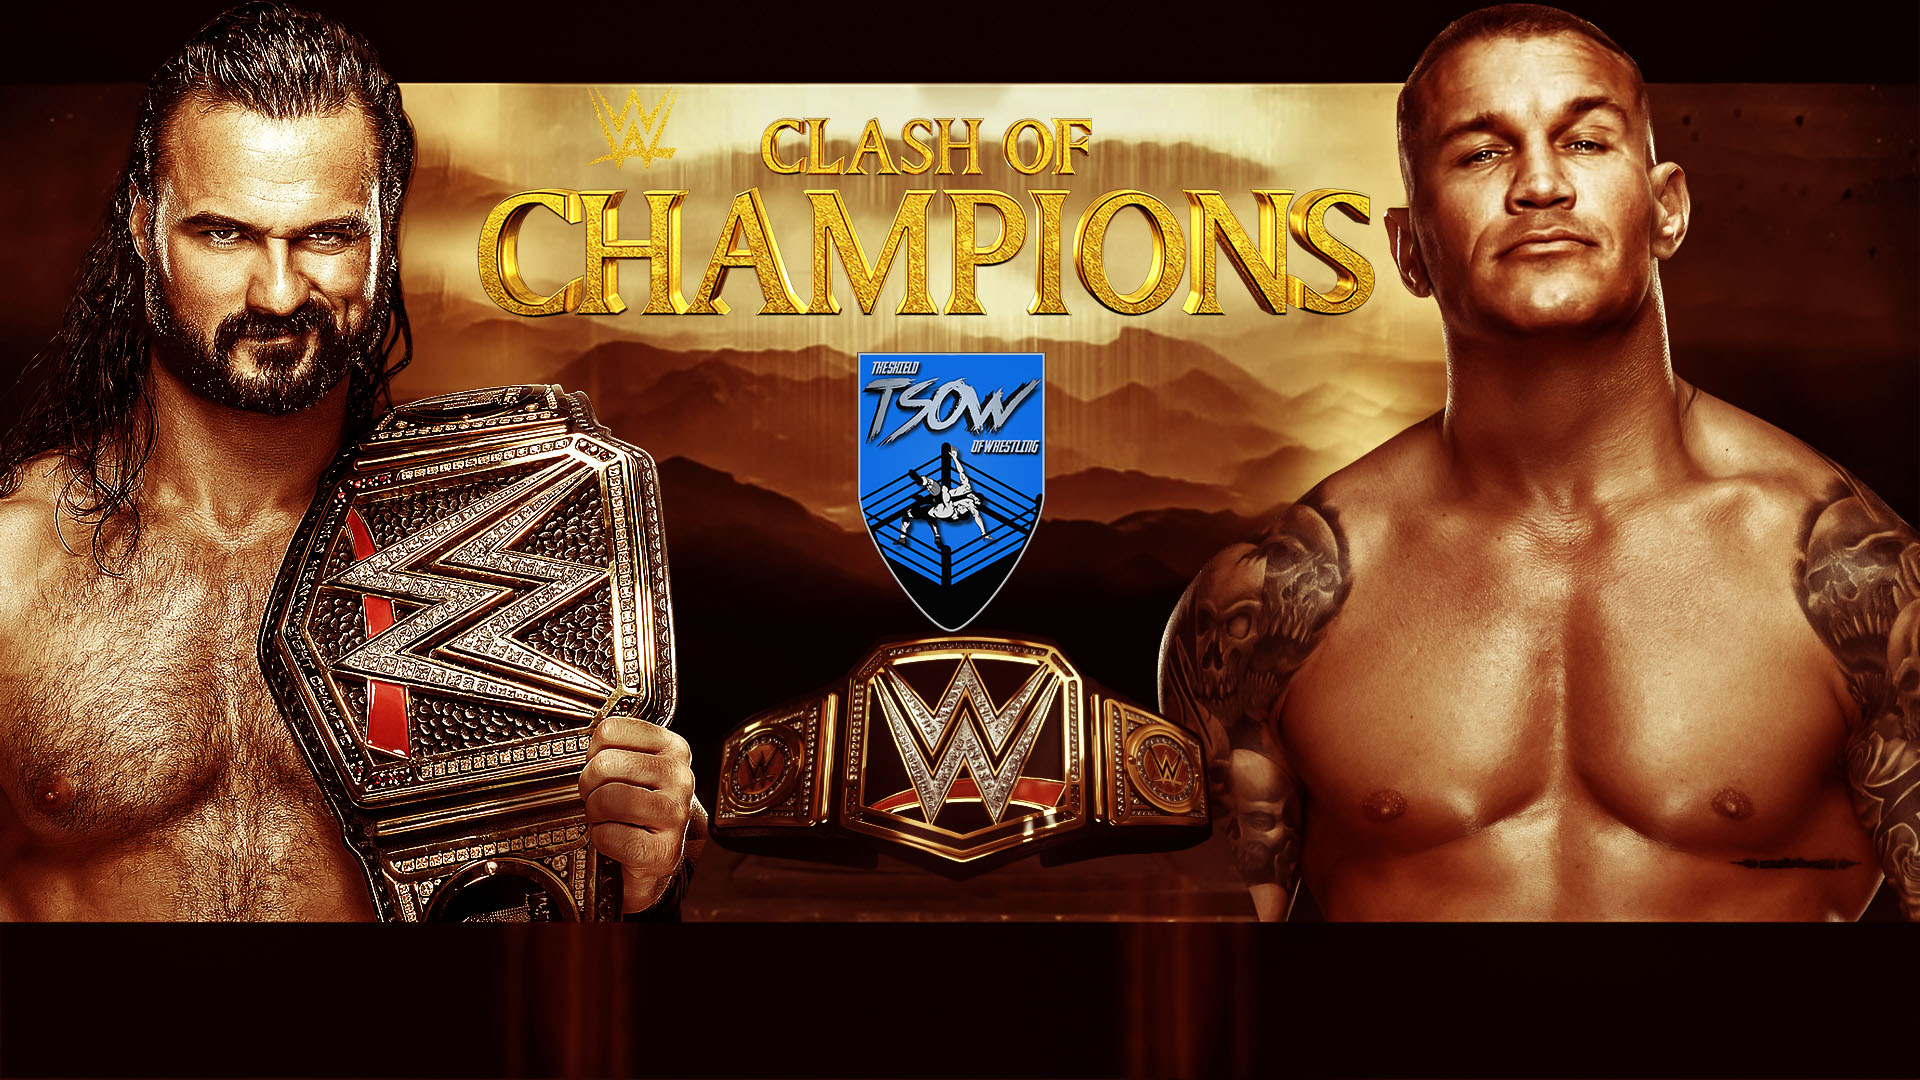 Clash Of Champions 2020 - WWE - Preview